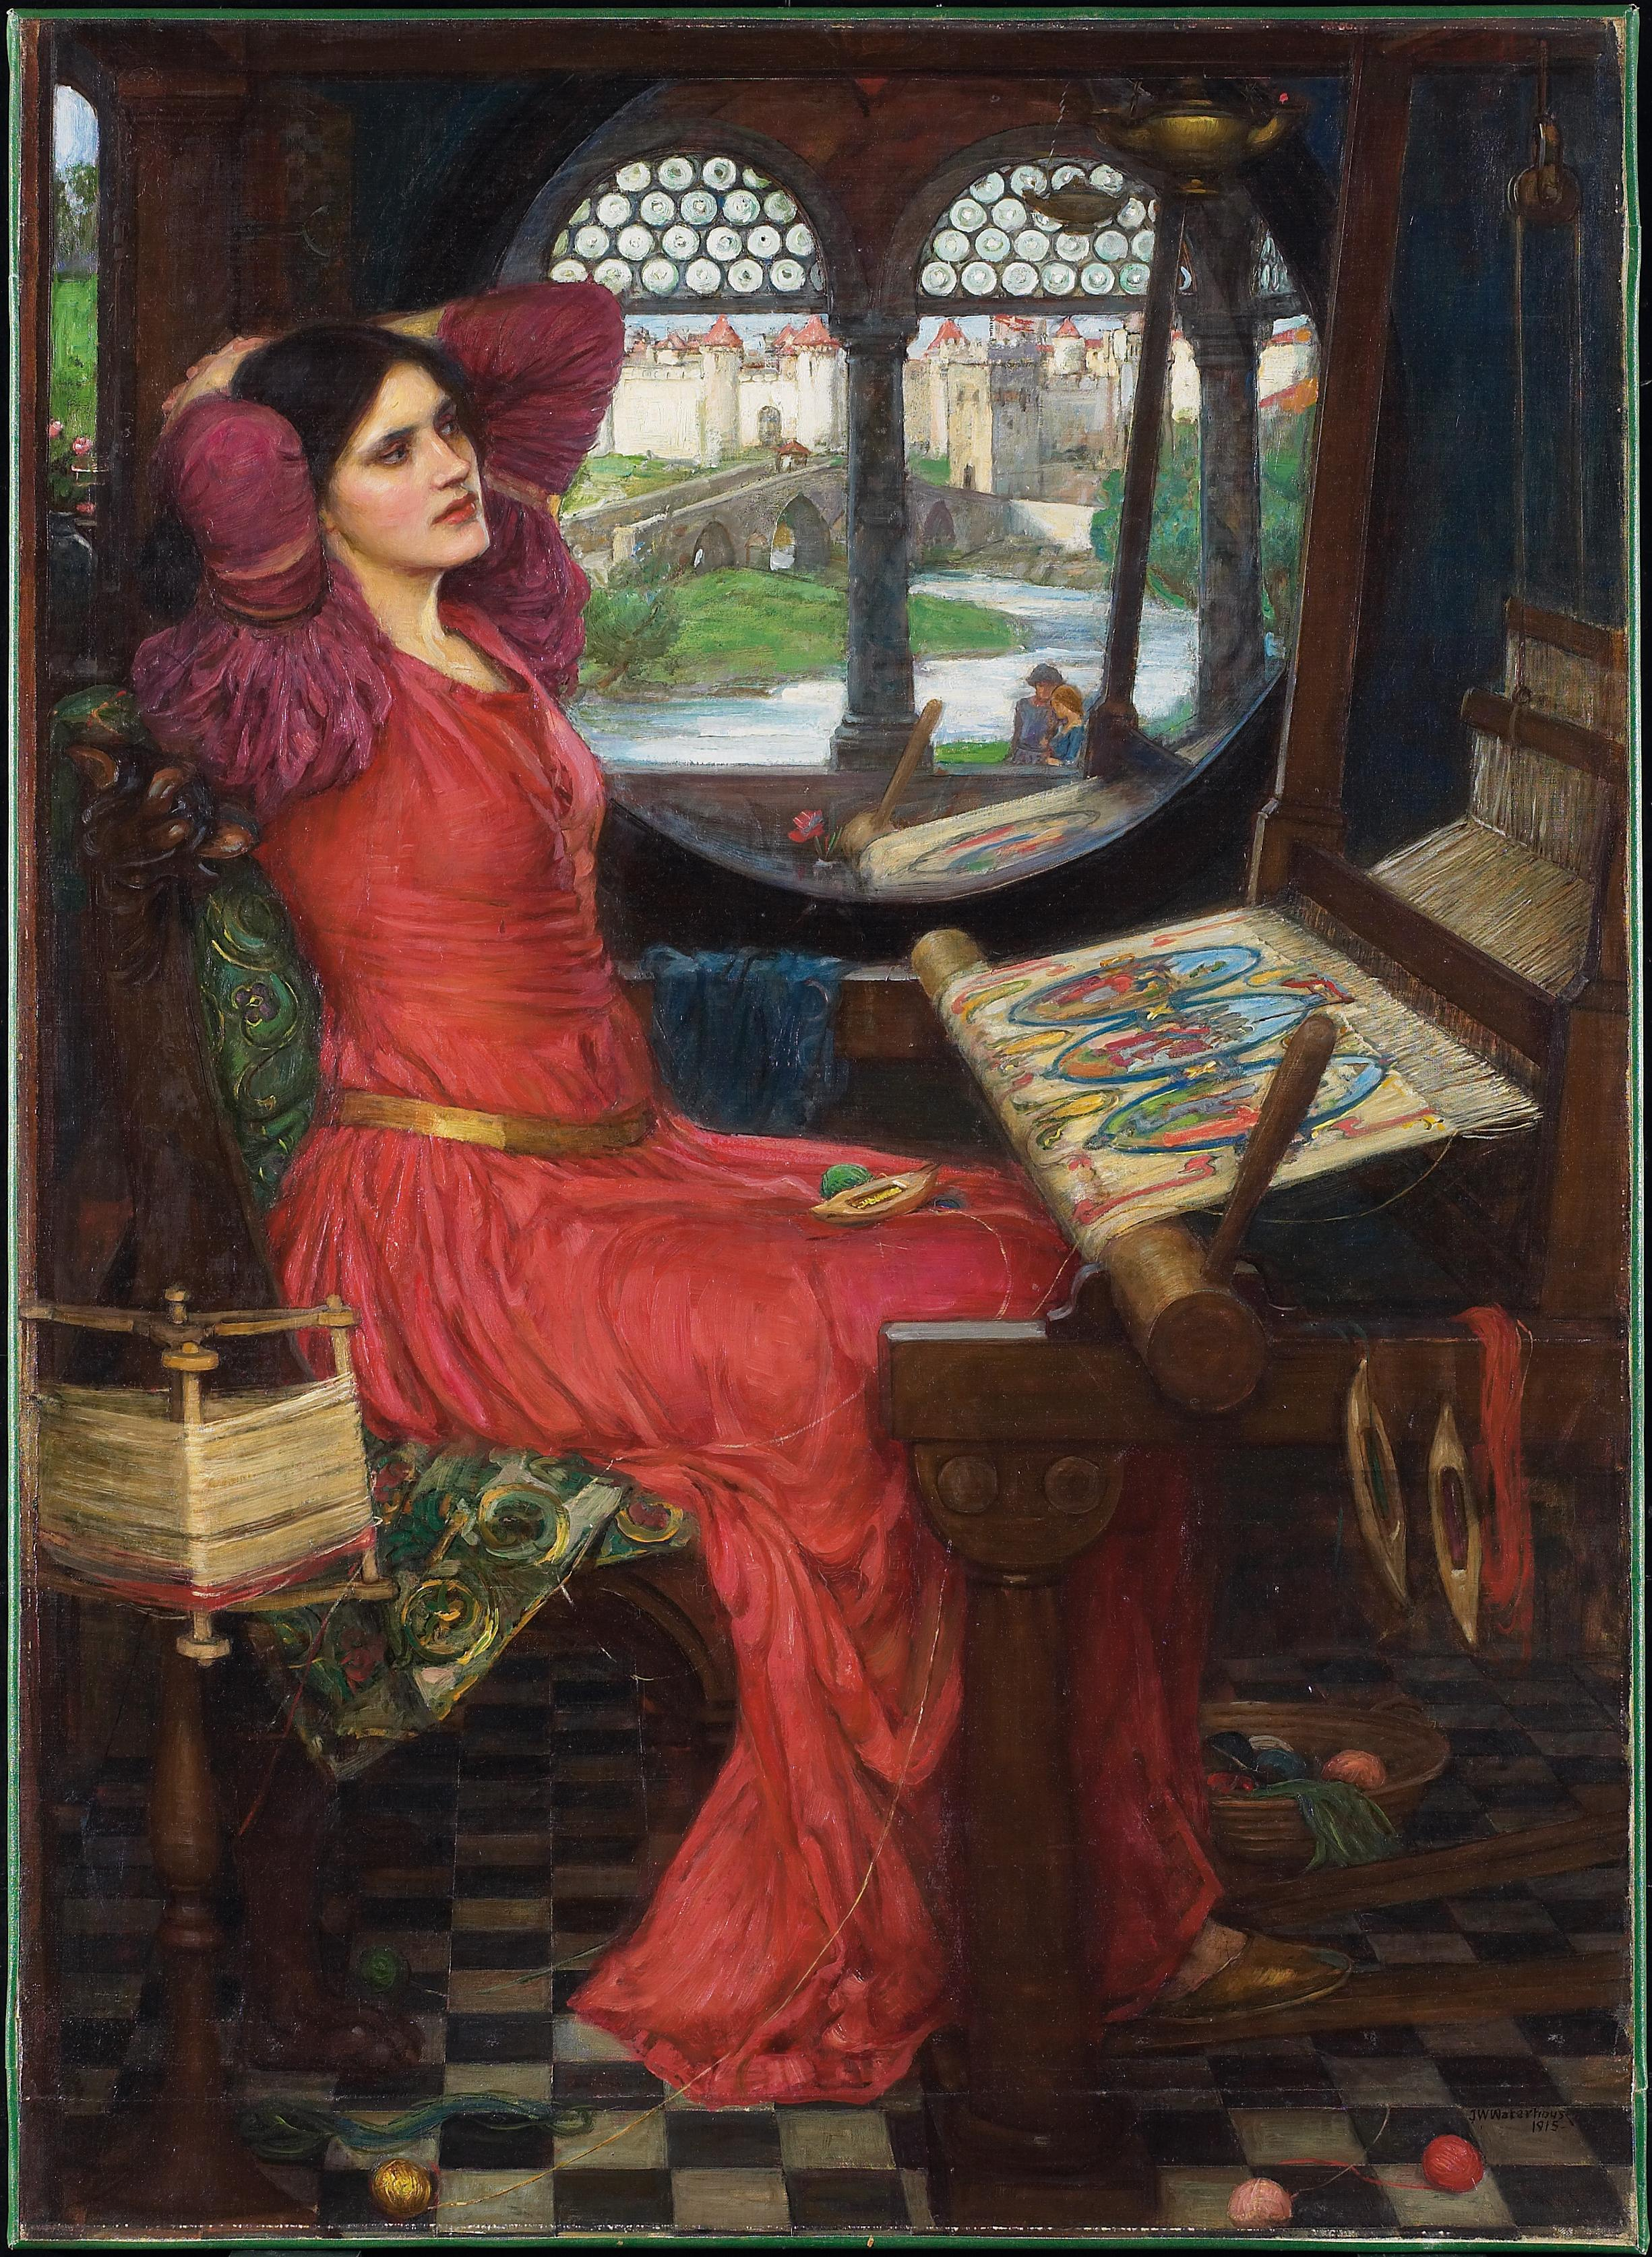 http://upload.wikimedia.org/wikipedia/commons/9/92/John_William_Waterhouse_-_I_am_half-sick_of_shadows%2C_said_the_lady_of_shalott.JPG